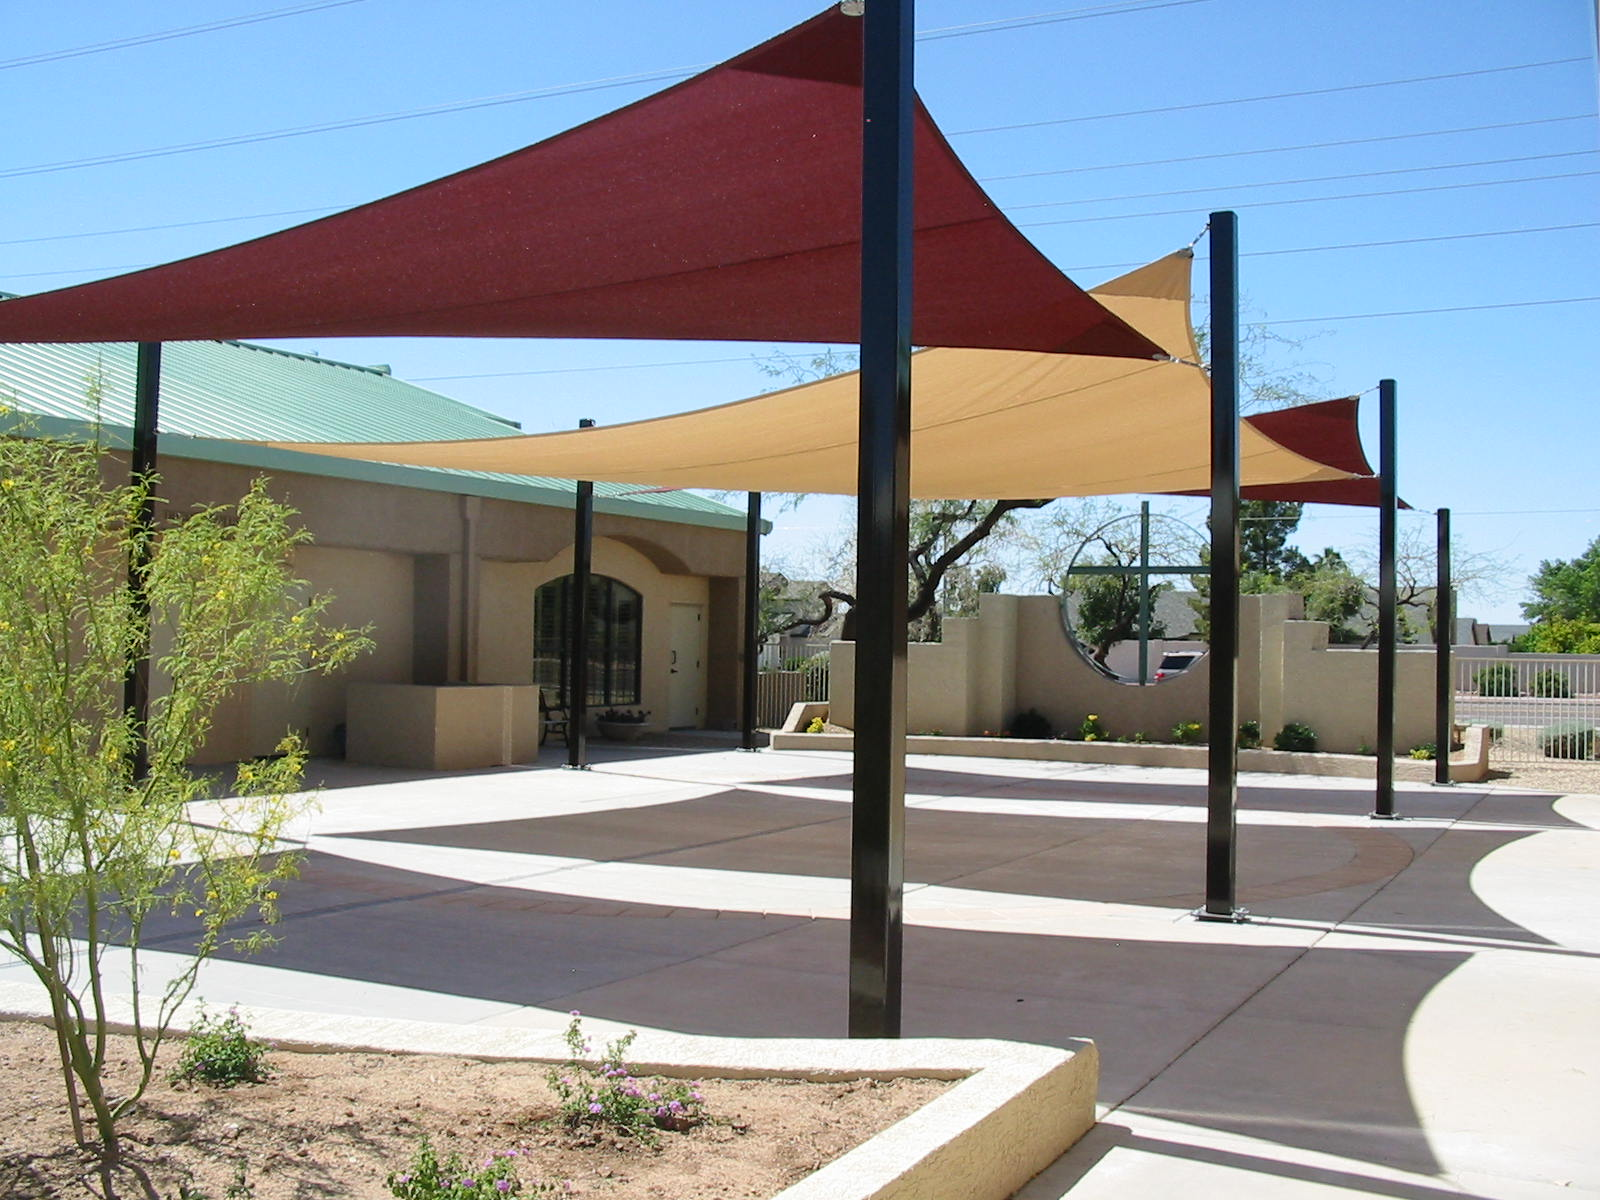 Image Of Sun Shade Sail Residential Patio Wiicqdy